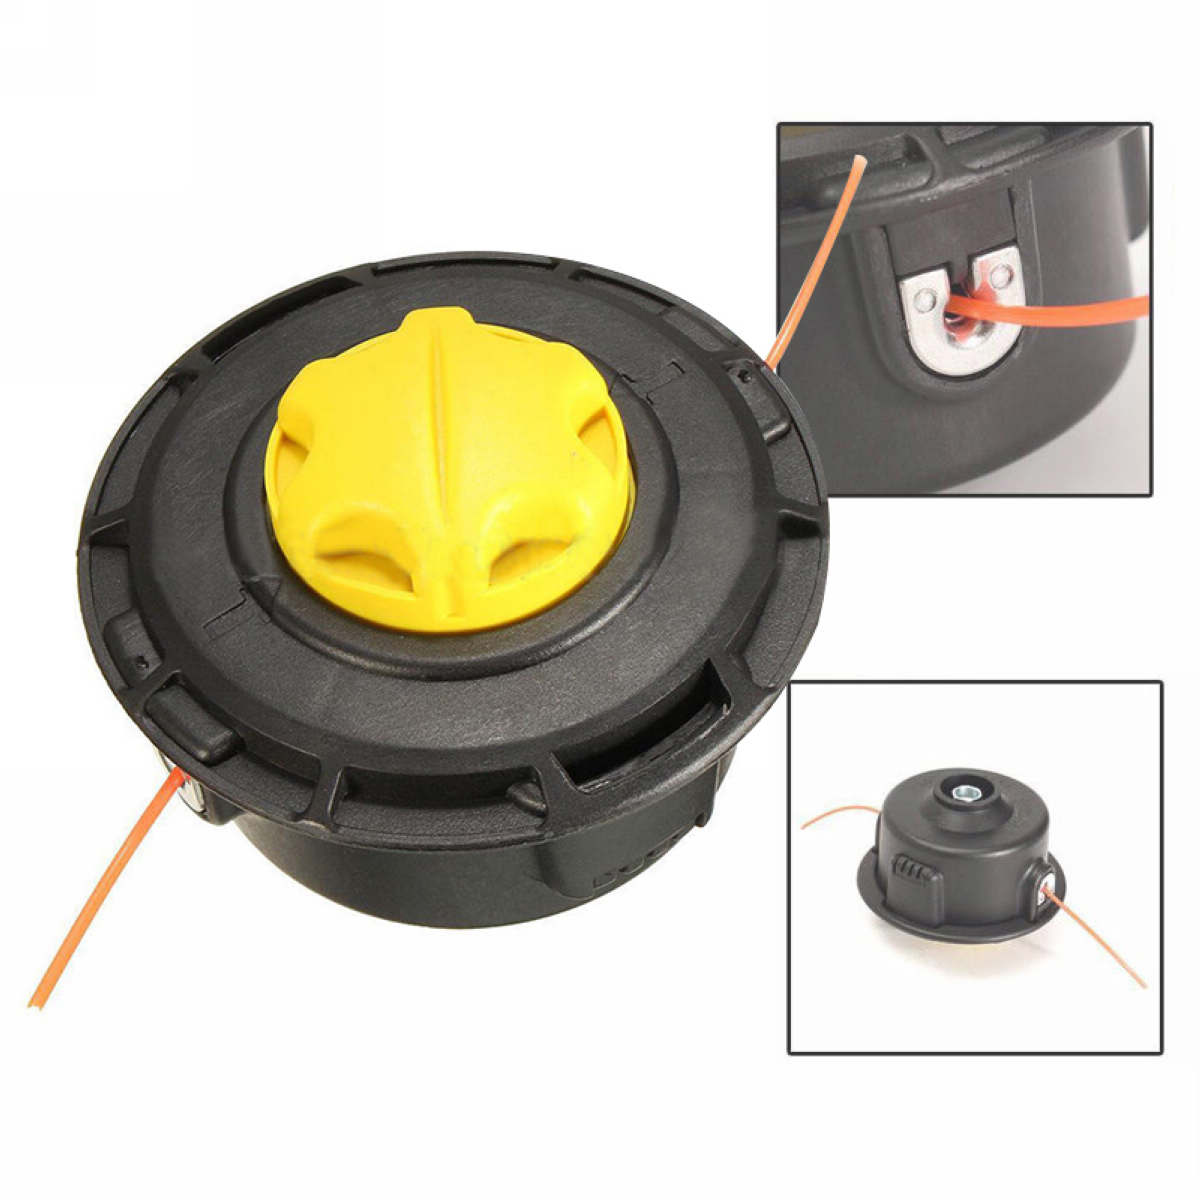 Mayitr New Trimmer Head For String Trimmer Replacement Bump Head Lawn Mower Parts Garden Tools 2016 new garden tools top quality charging grass trimmer portable home lawn mower with wheels trimmer grass trim level machine